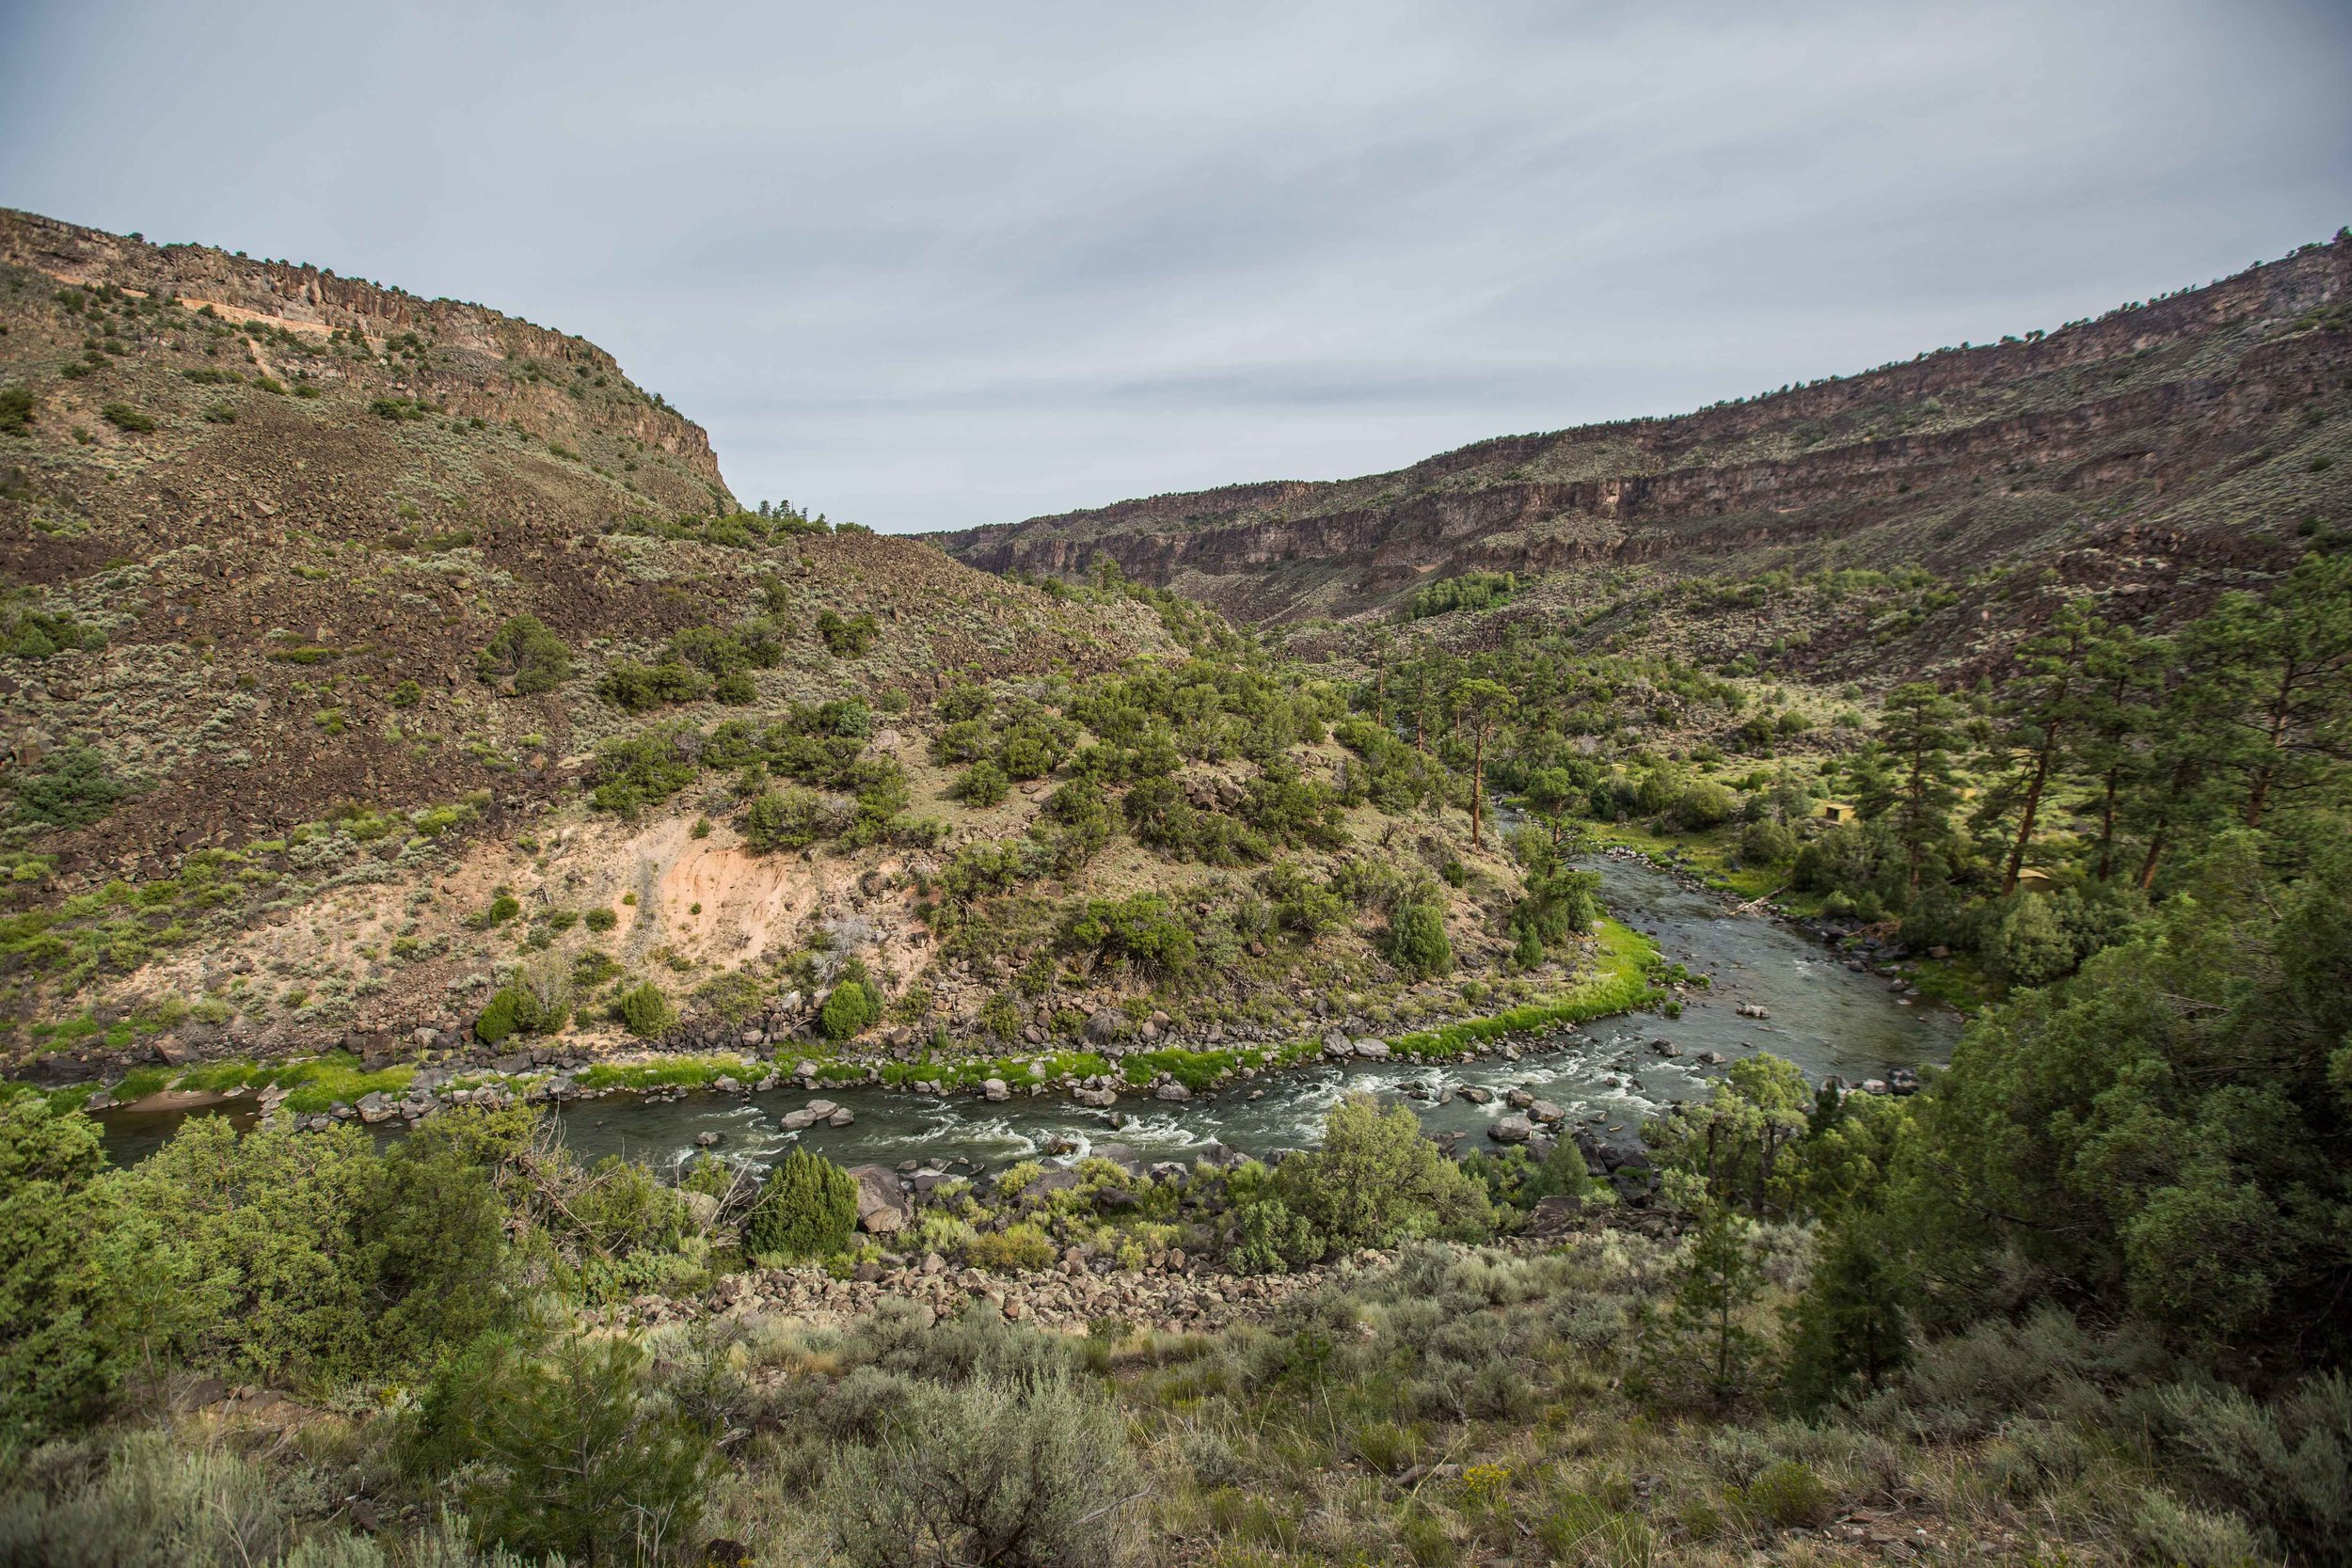 rio grande del norte - The Rio Grande Gorge, flowing through the Rio Grande del Norte National Monument. This gorge was actually formed as part of the Rio Grande Rift, but has been also carved by water over the years. If you cannot see the brown and rainbow trout, you'll just have to go there yourself.